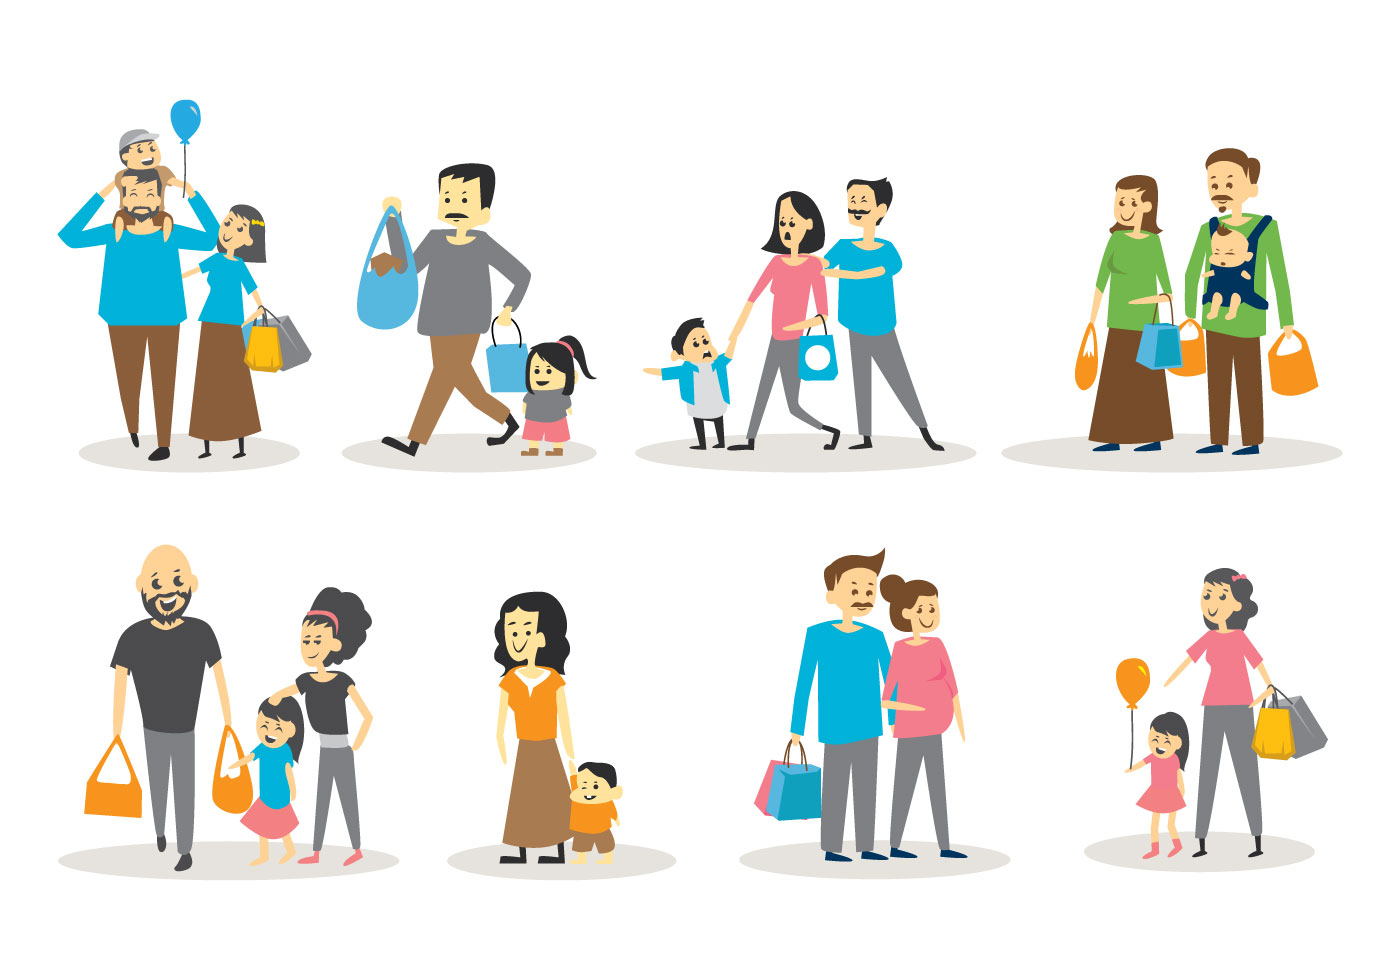 Gay Family vectors and photos - free graphic resources